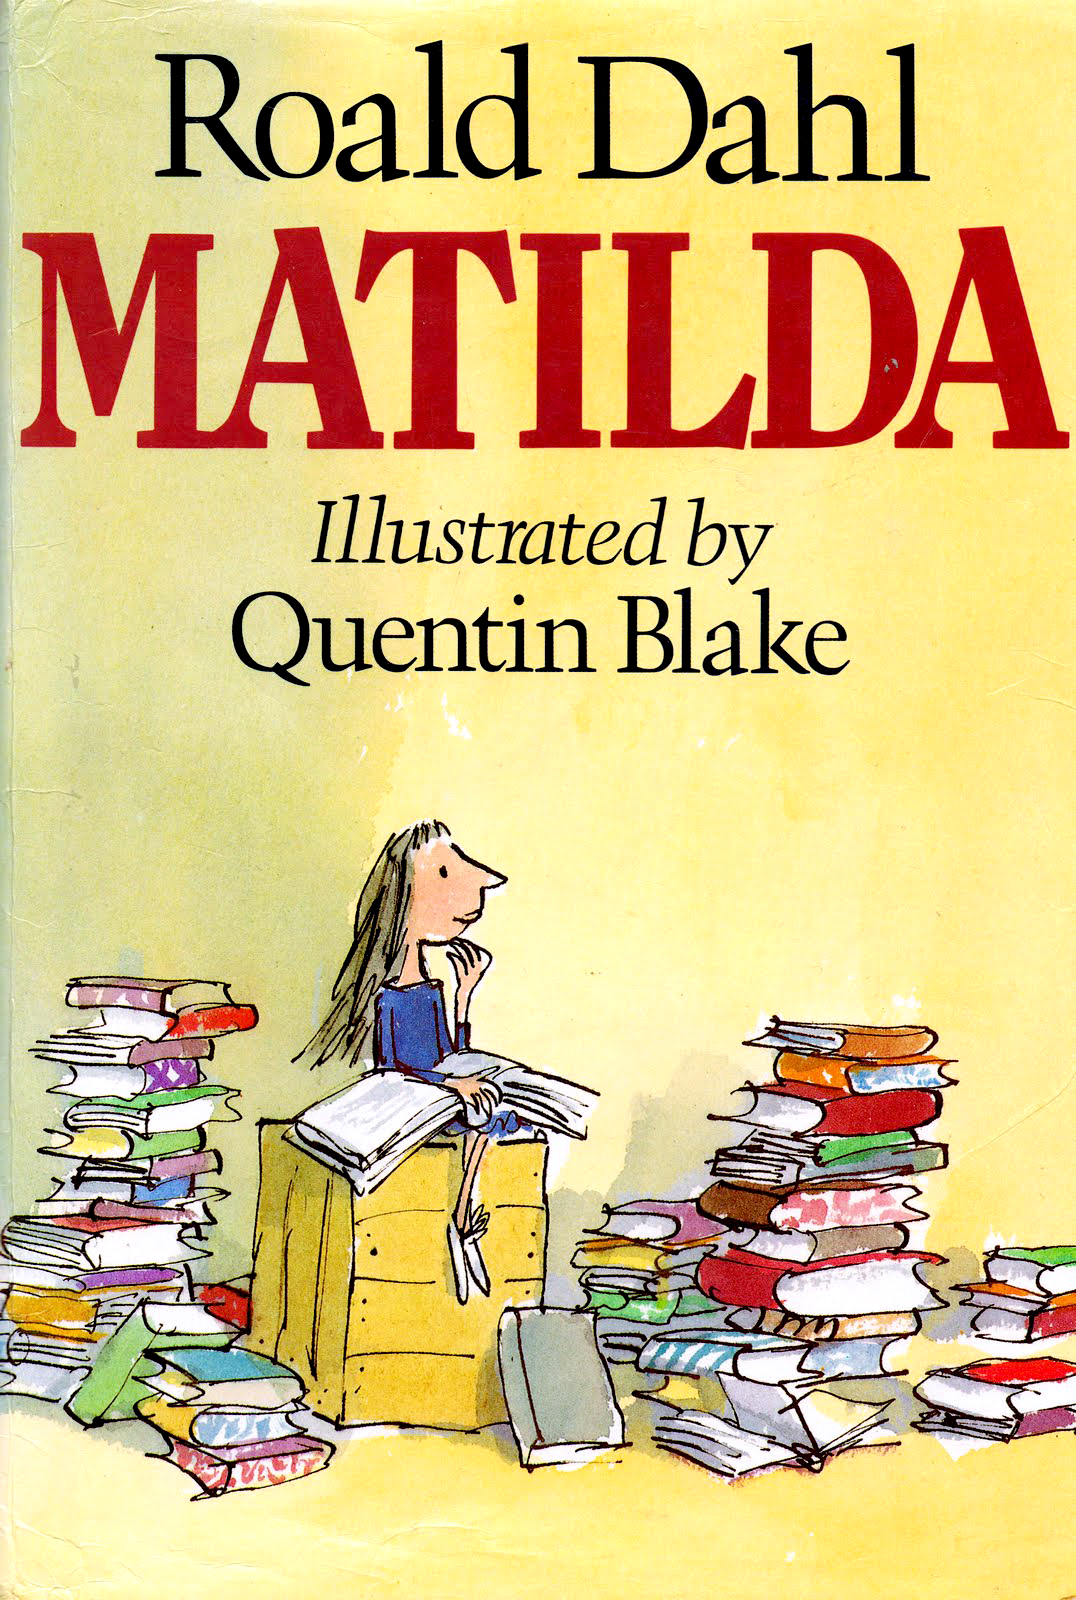 Kids Story Book Cover : Matilda by roald dahl children s book review mysf reviews